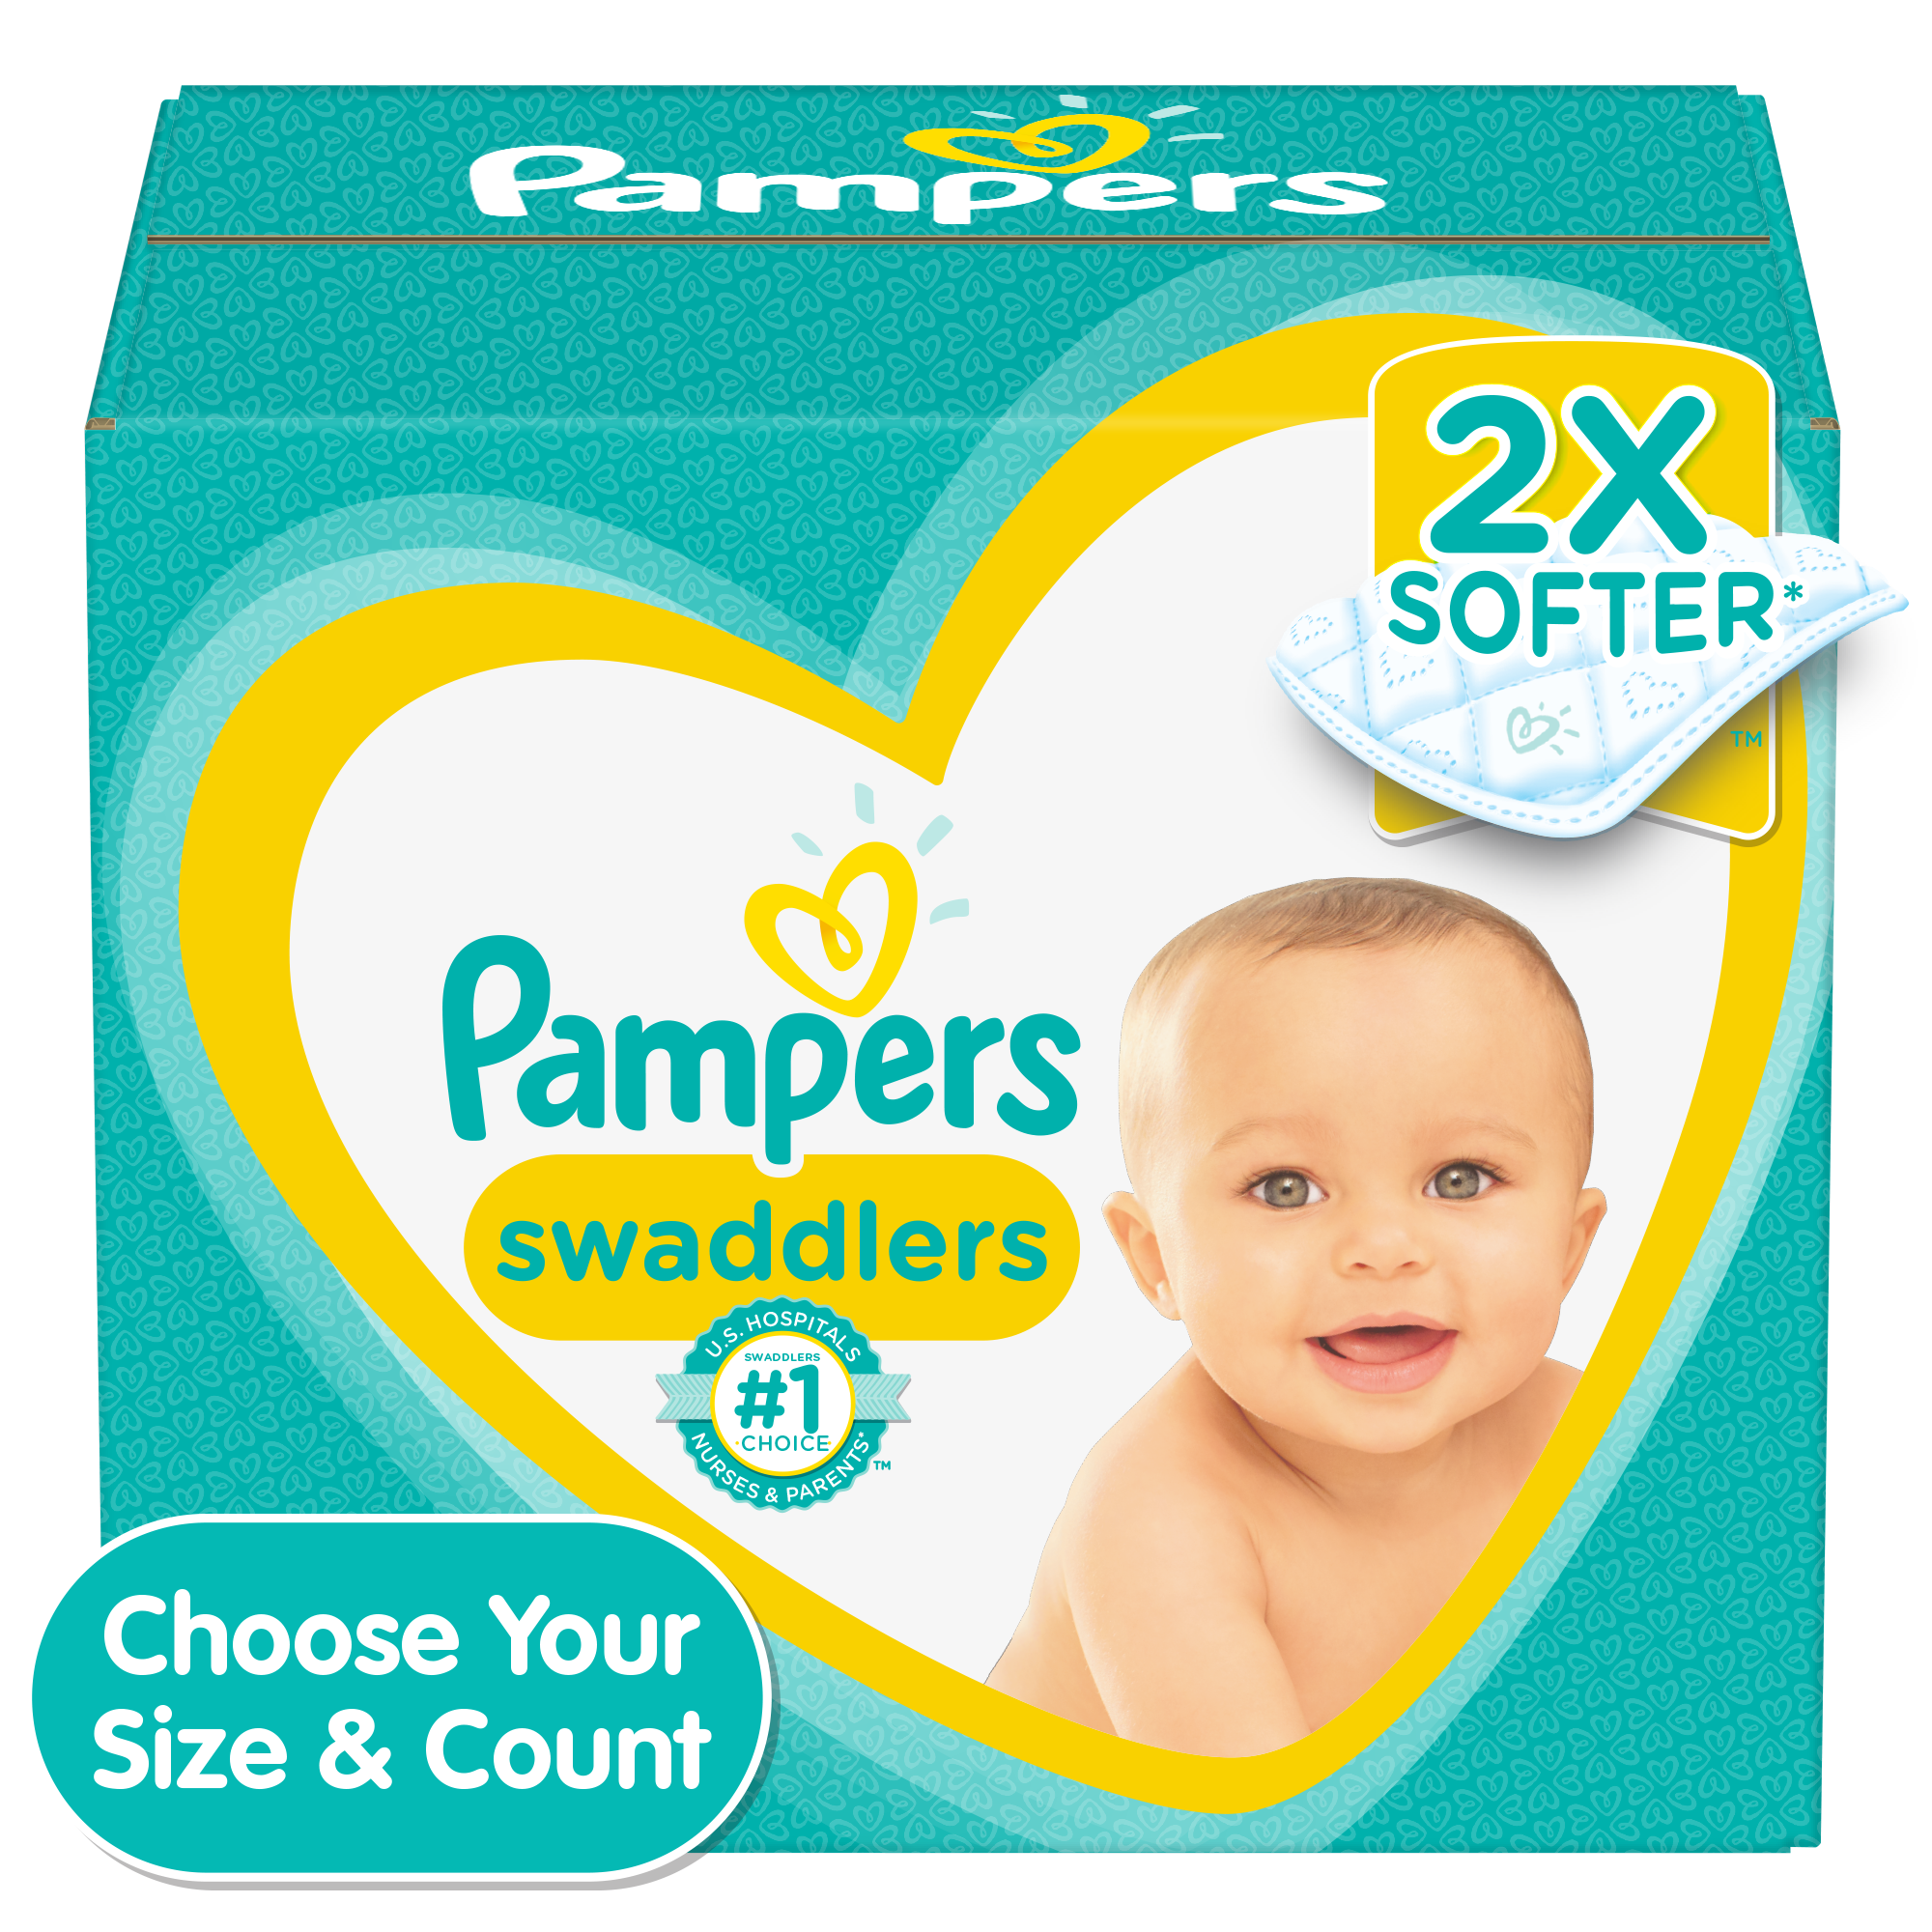 Pampers Swaddlers Diapers, Soft and Absorbent, Size 3, 136 ct